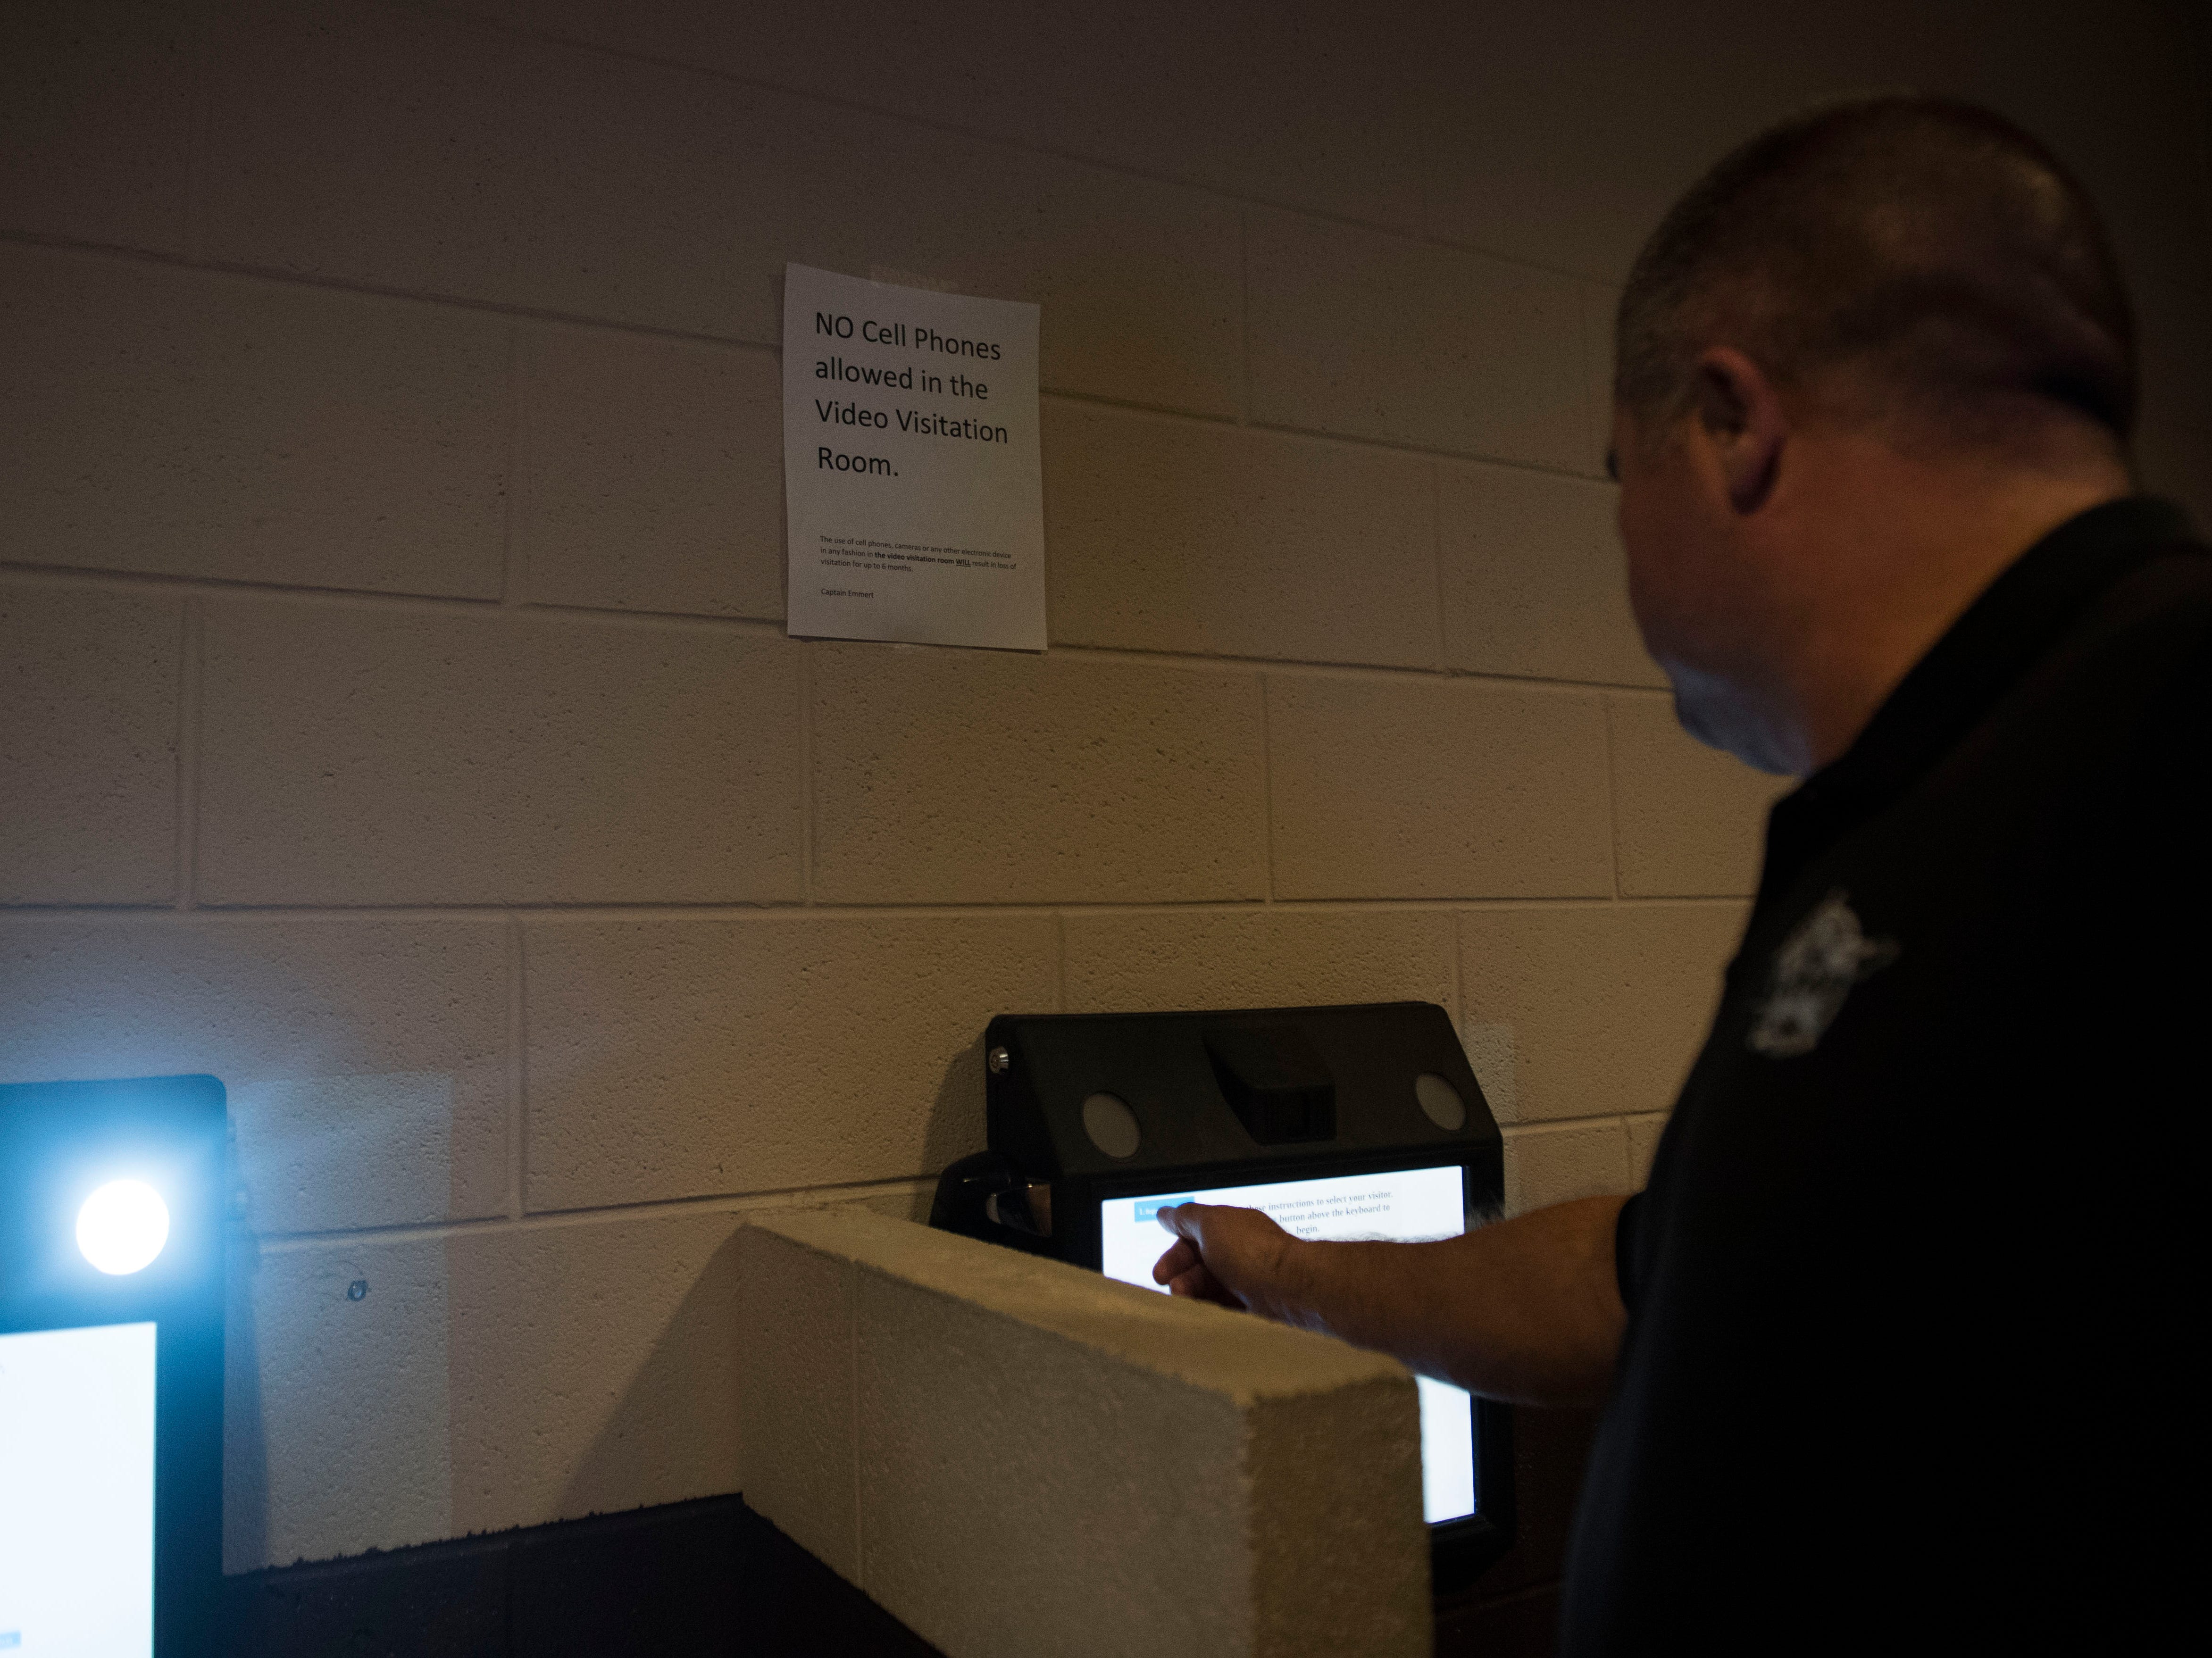 Tim Phillips, Chief Deputy at the Roane County Sheriff's Office demonstrates how to use the video visitation system in the Roane County Sheriff's Office and Detention Center Wednesday, May 30, 2018.